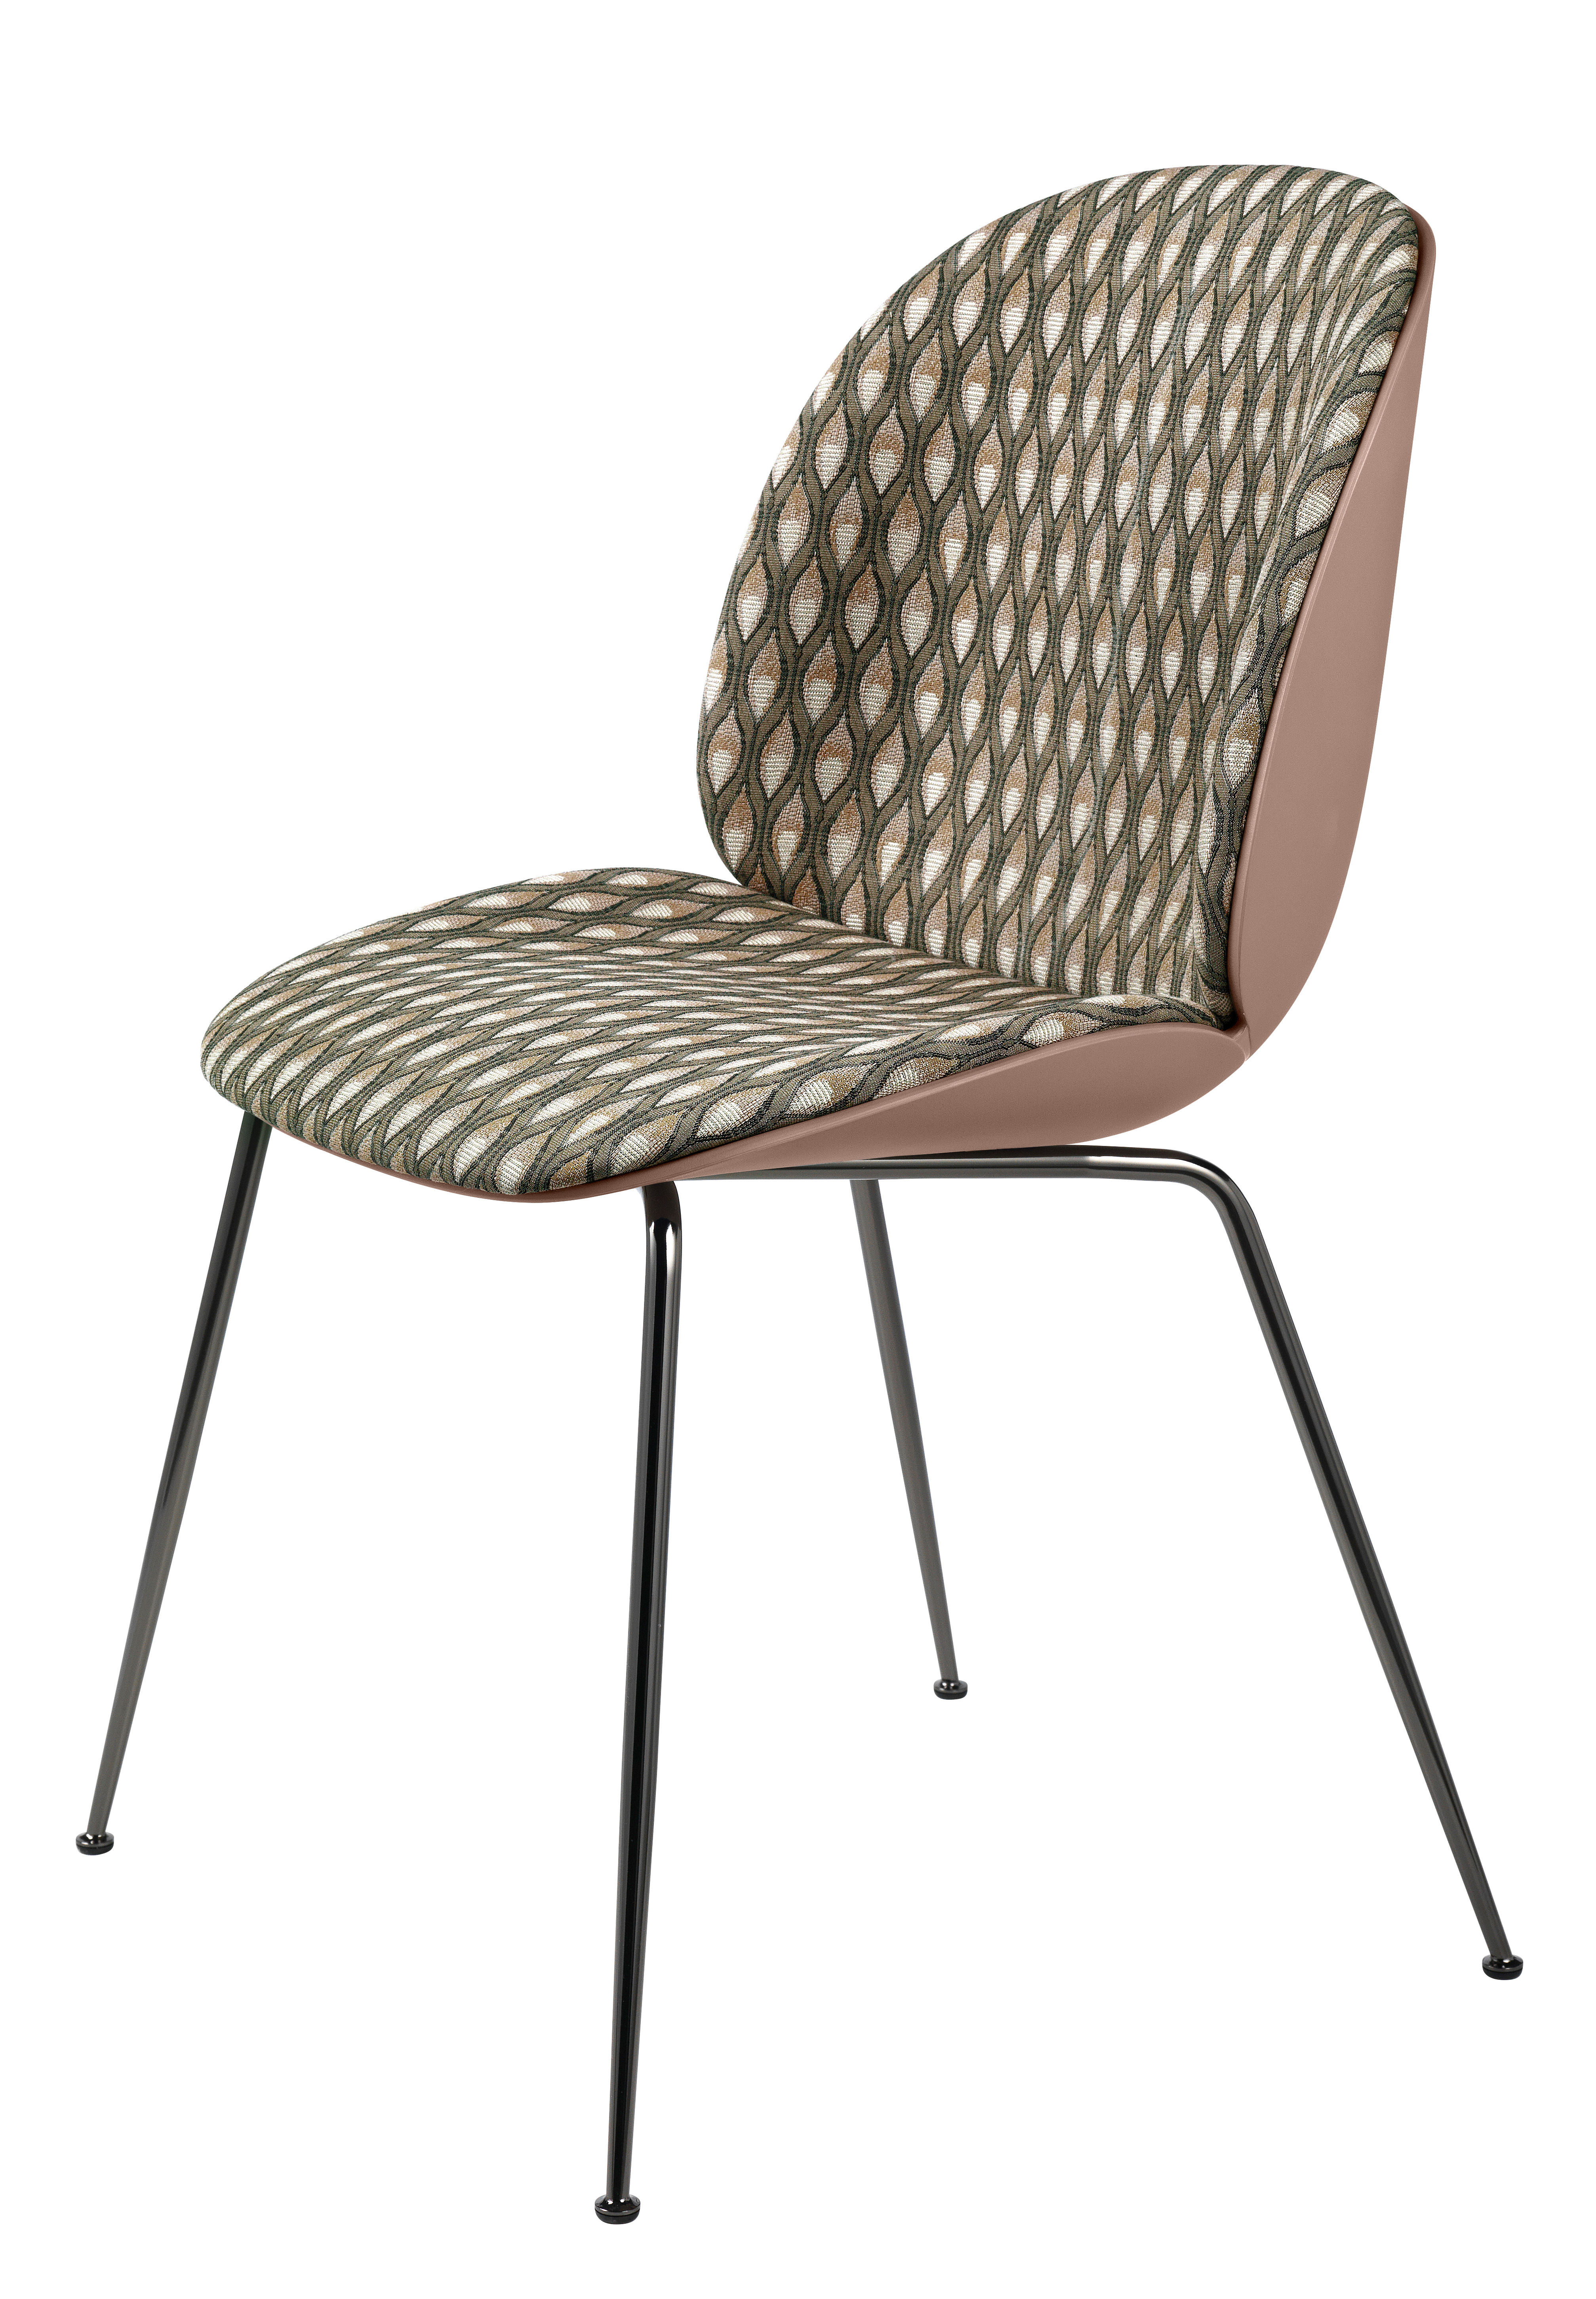 Furniture - Chairs - Beetle Padded chair - /Gamfratesi - Fabric seat by Gubi - Pink/Black chromed legs - Fabric, Foam, Polypropylene, Varnished steel